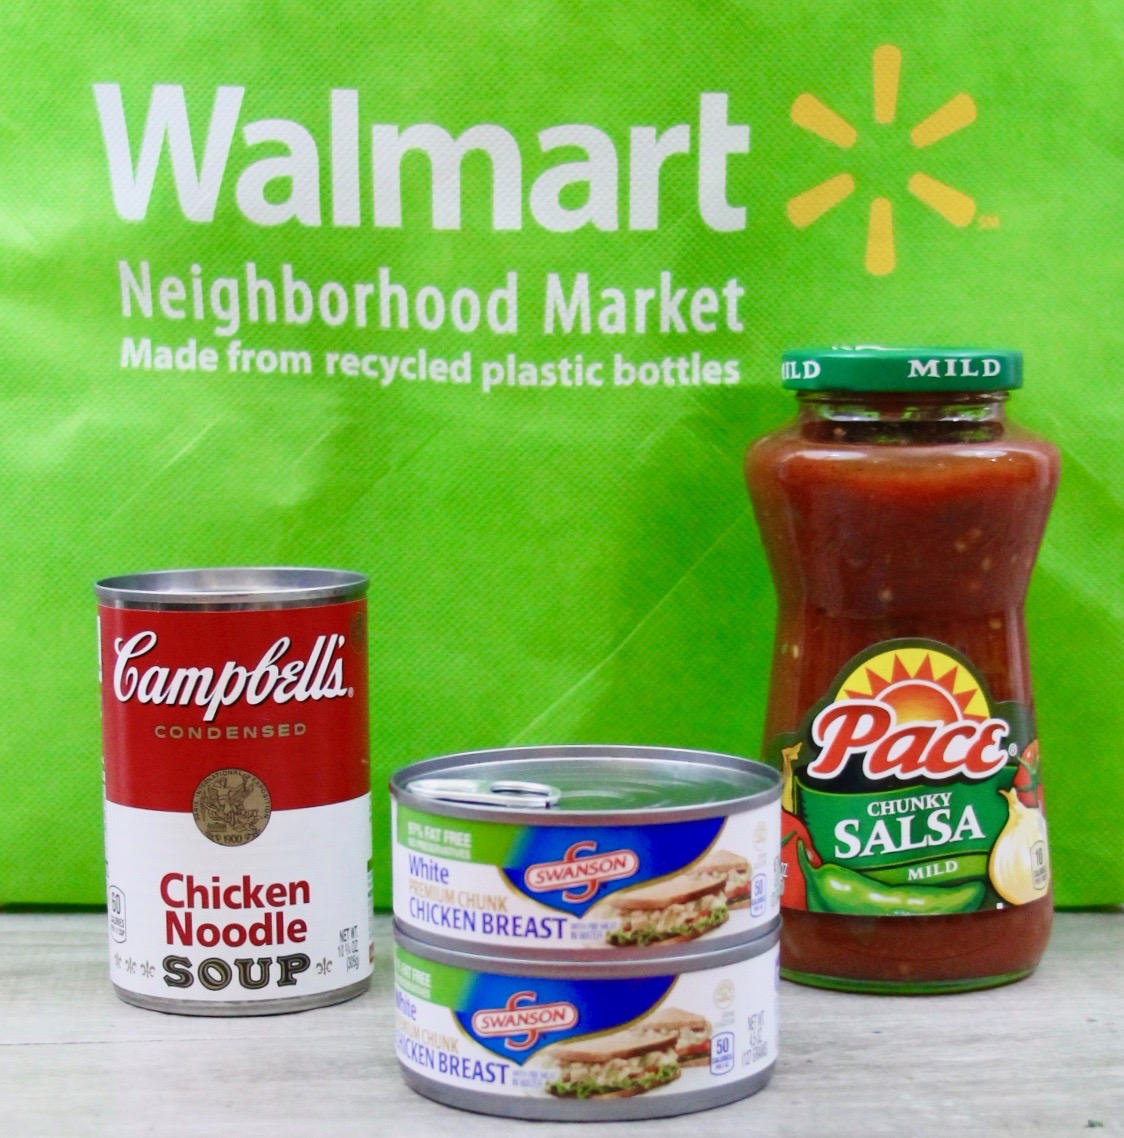 Campbells products at Walmart